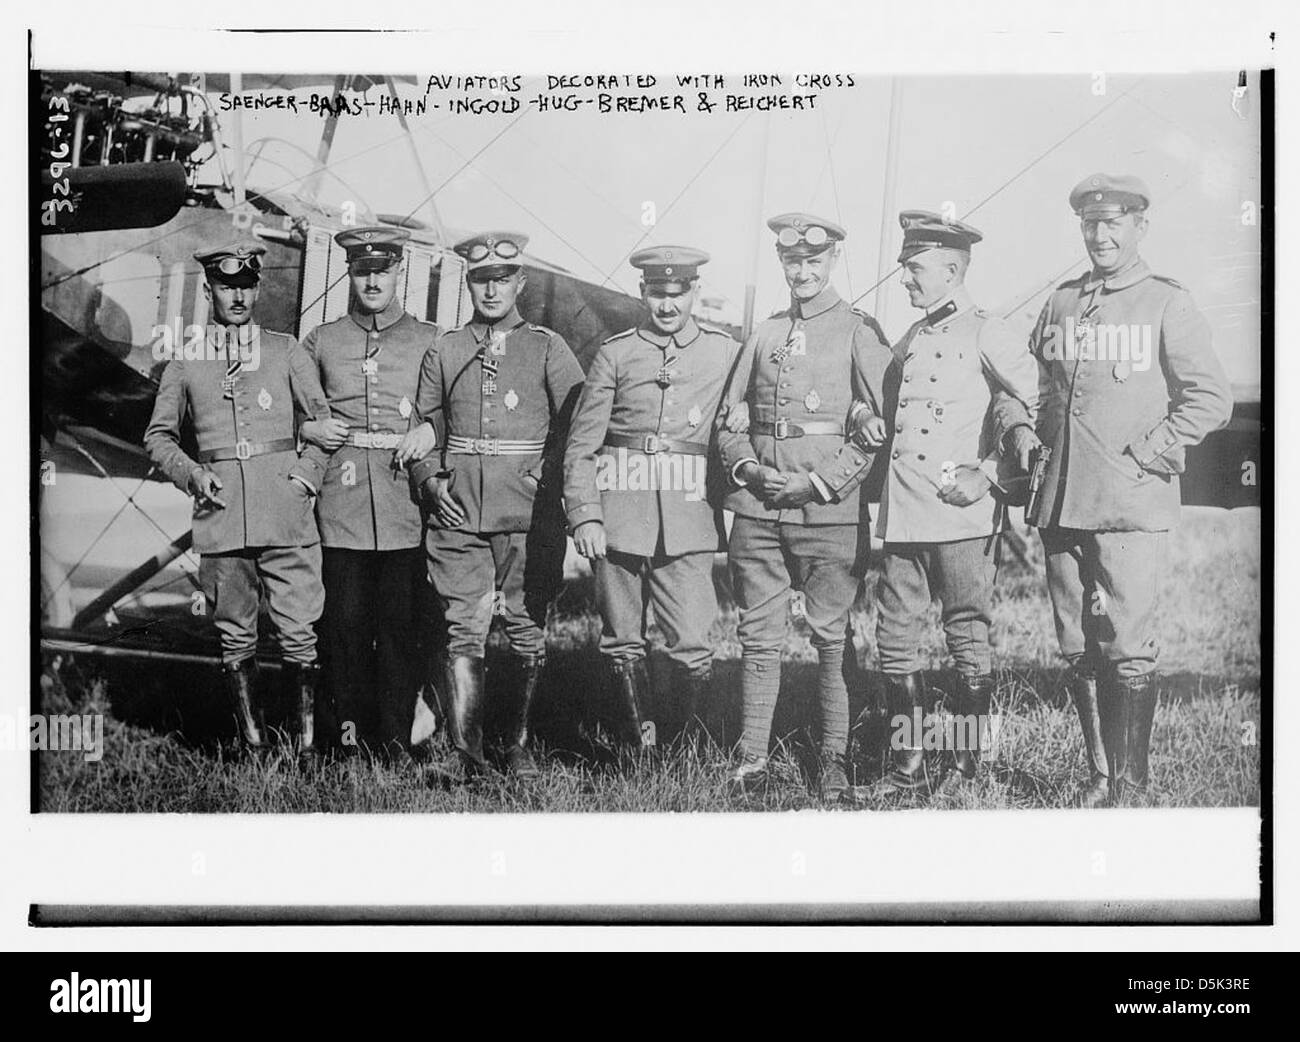 Aviators decorated with iron cross: Saenger -- Baas -- Hahn -- Ingold -- Hug -- Bremer -- Reichert (LOC) Stock Photo